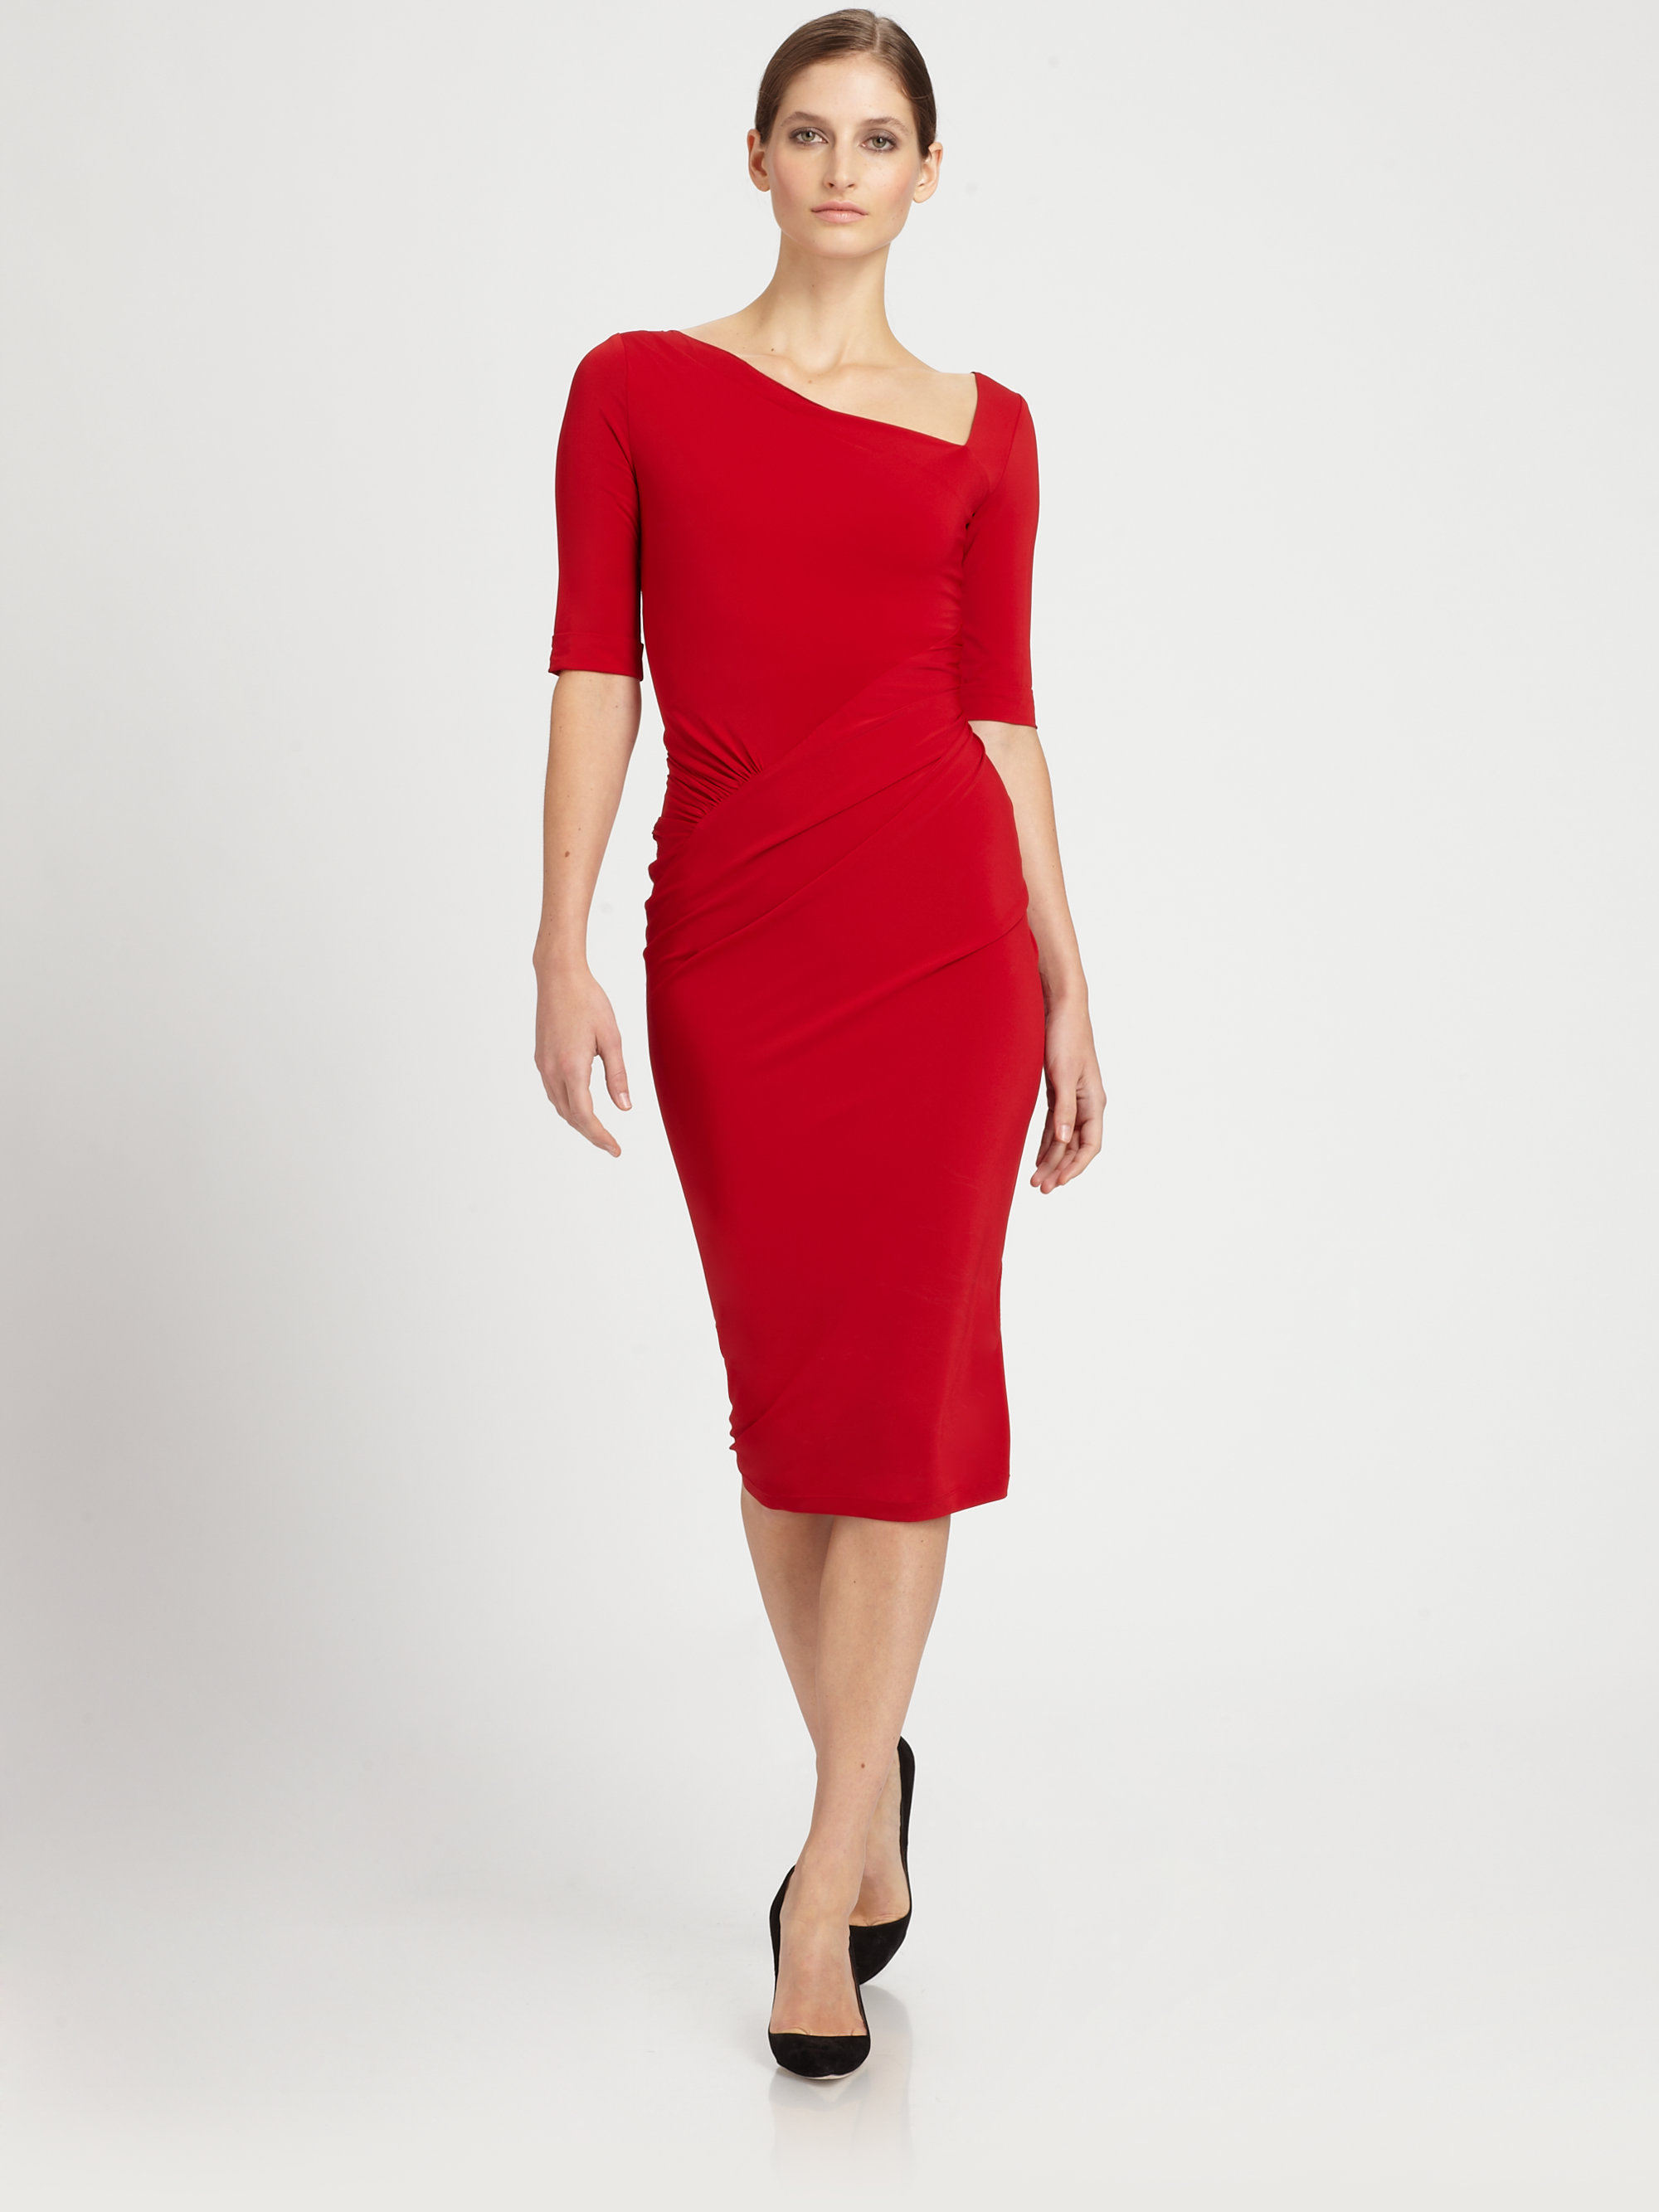 Donna karan Superfine Jersey Dress in Red | Lyst